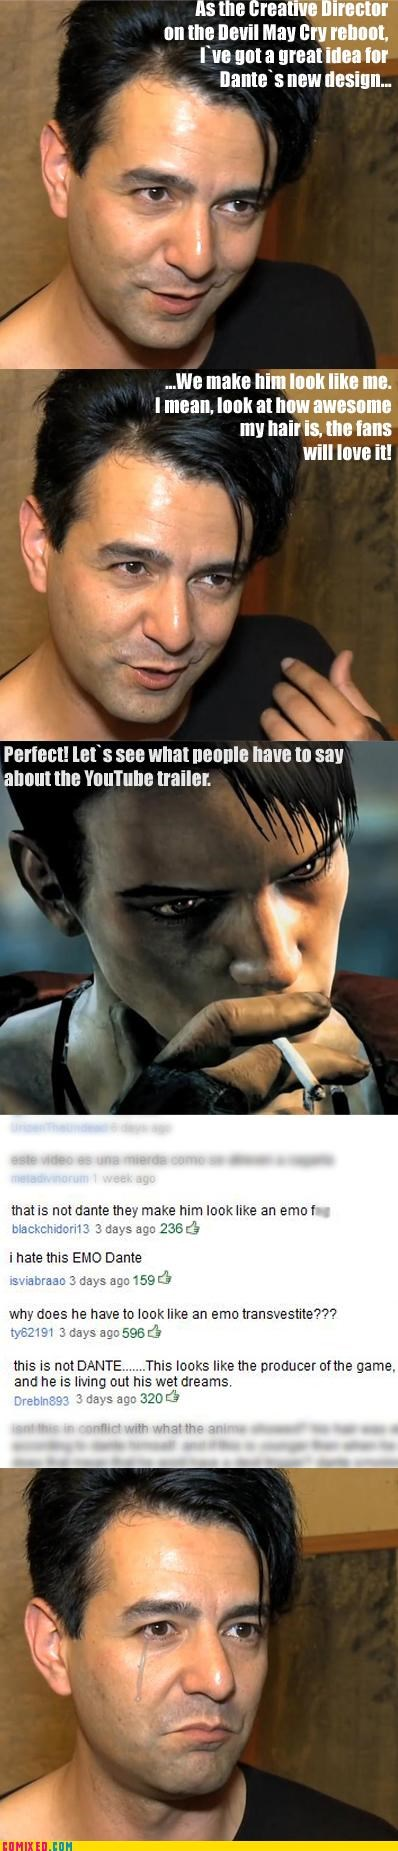 crying dante devil may cry emo tears fuel my laughter video games Videogames - 4406728448